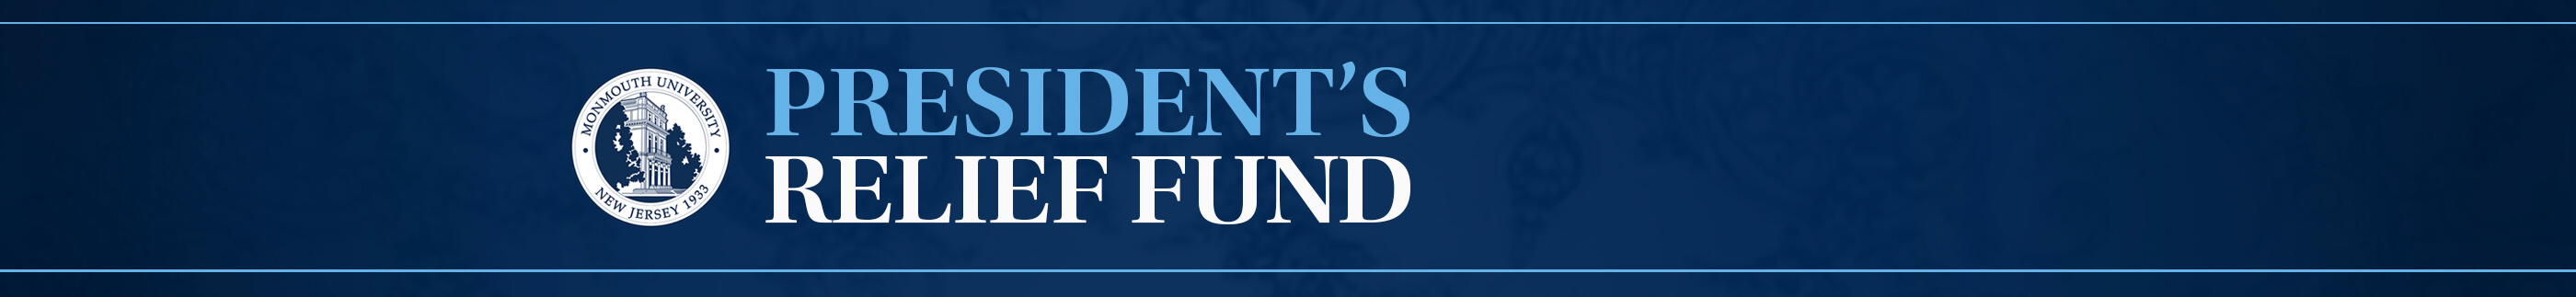 President's Relief Fund